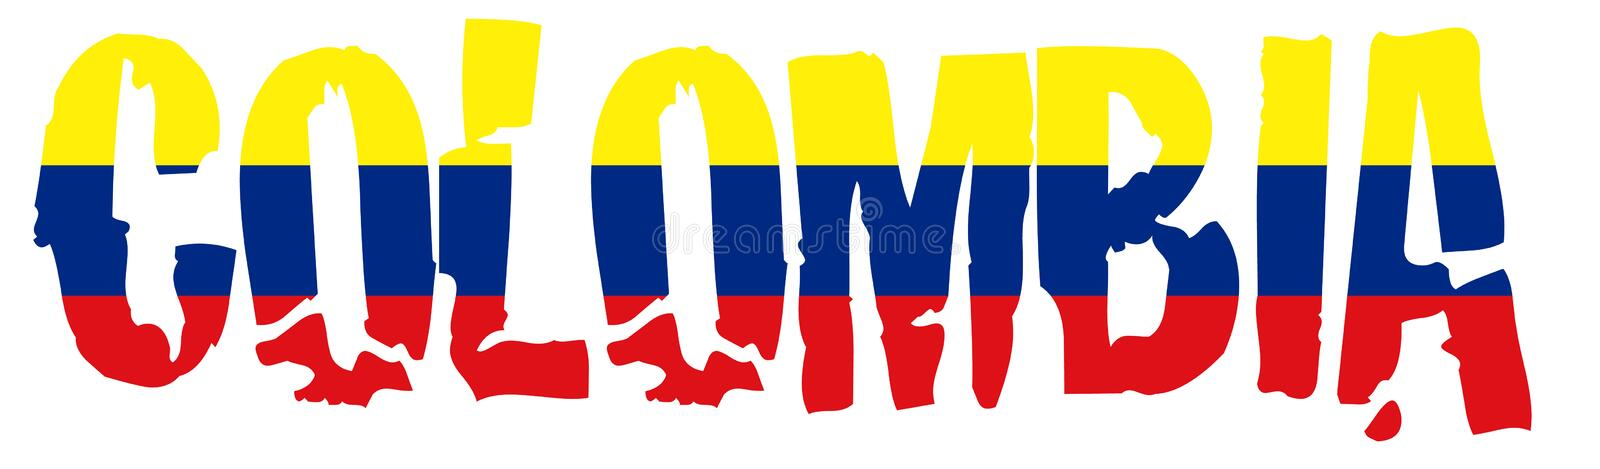 Colombia name with flag. Illustration of the Colombia flag and name royalty free illustration